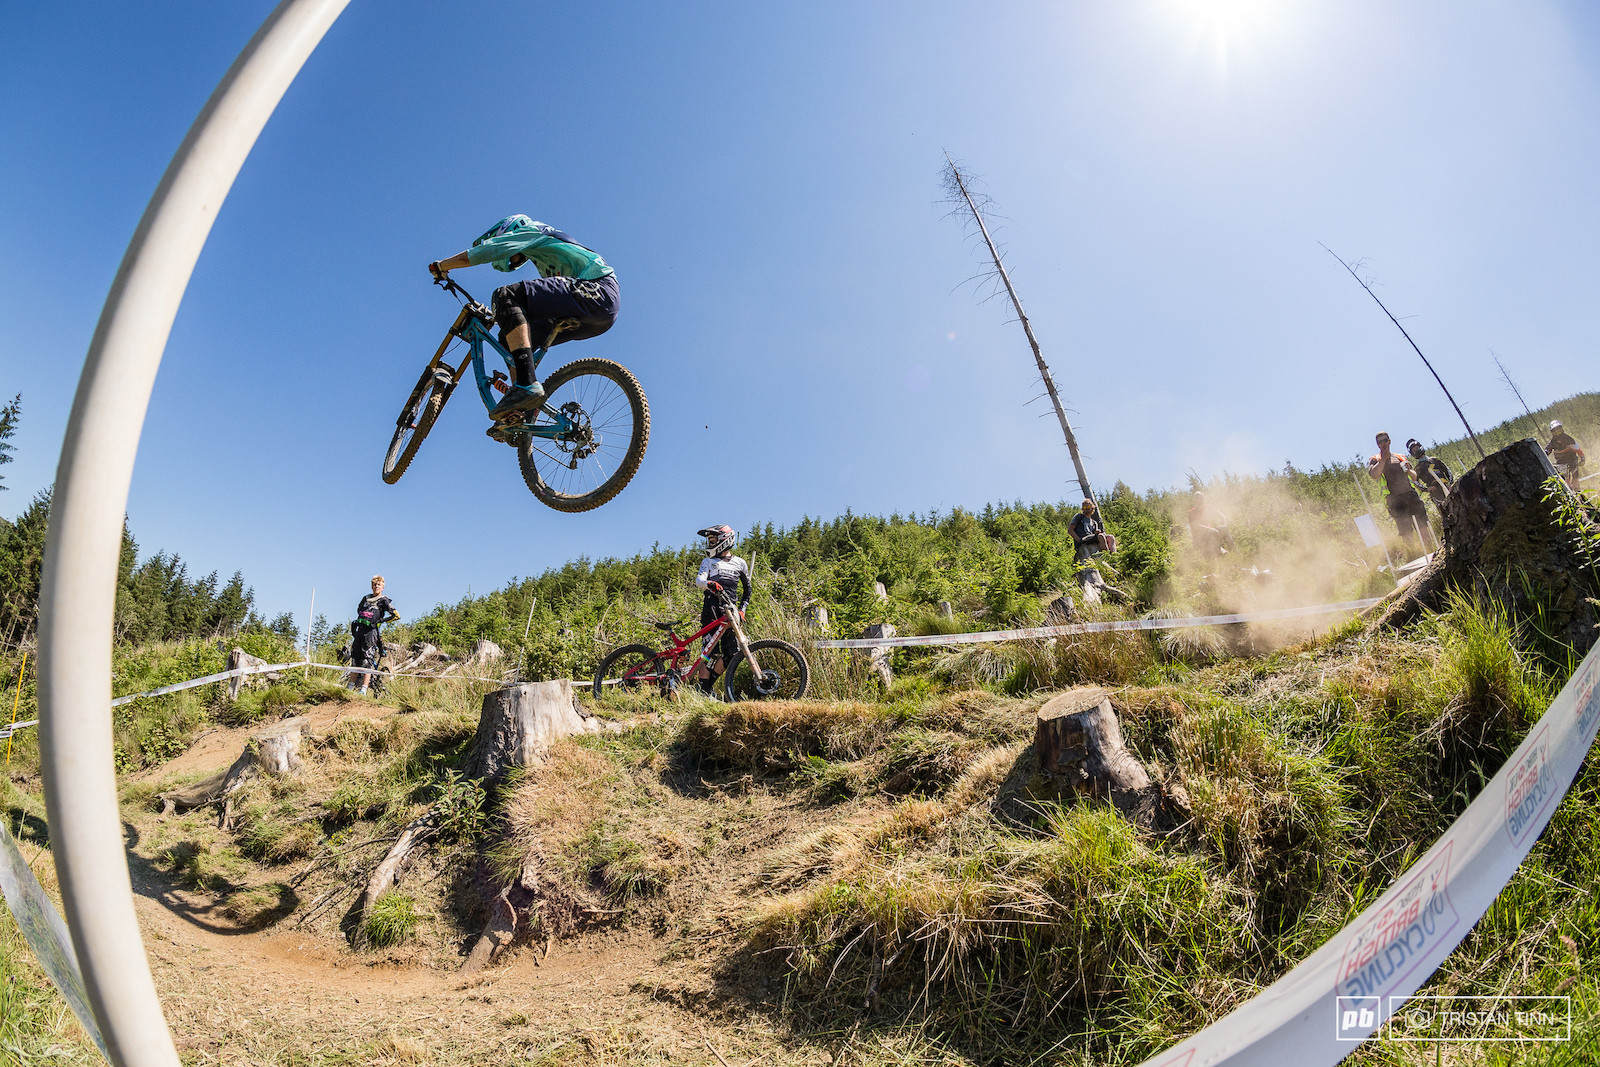 Hsbc Uk National Downhill Series Round 3 Rhyd Y Felin Saturday Kaos Catching Fire Seagrave Shows Them How It S Done He Certainly Set The Bar Today For